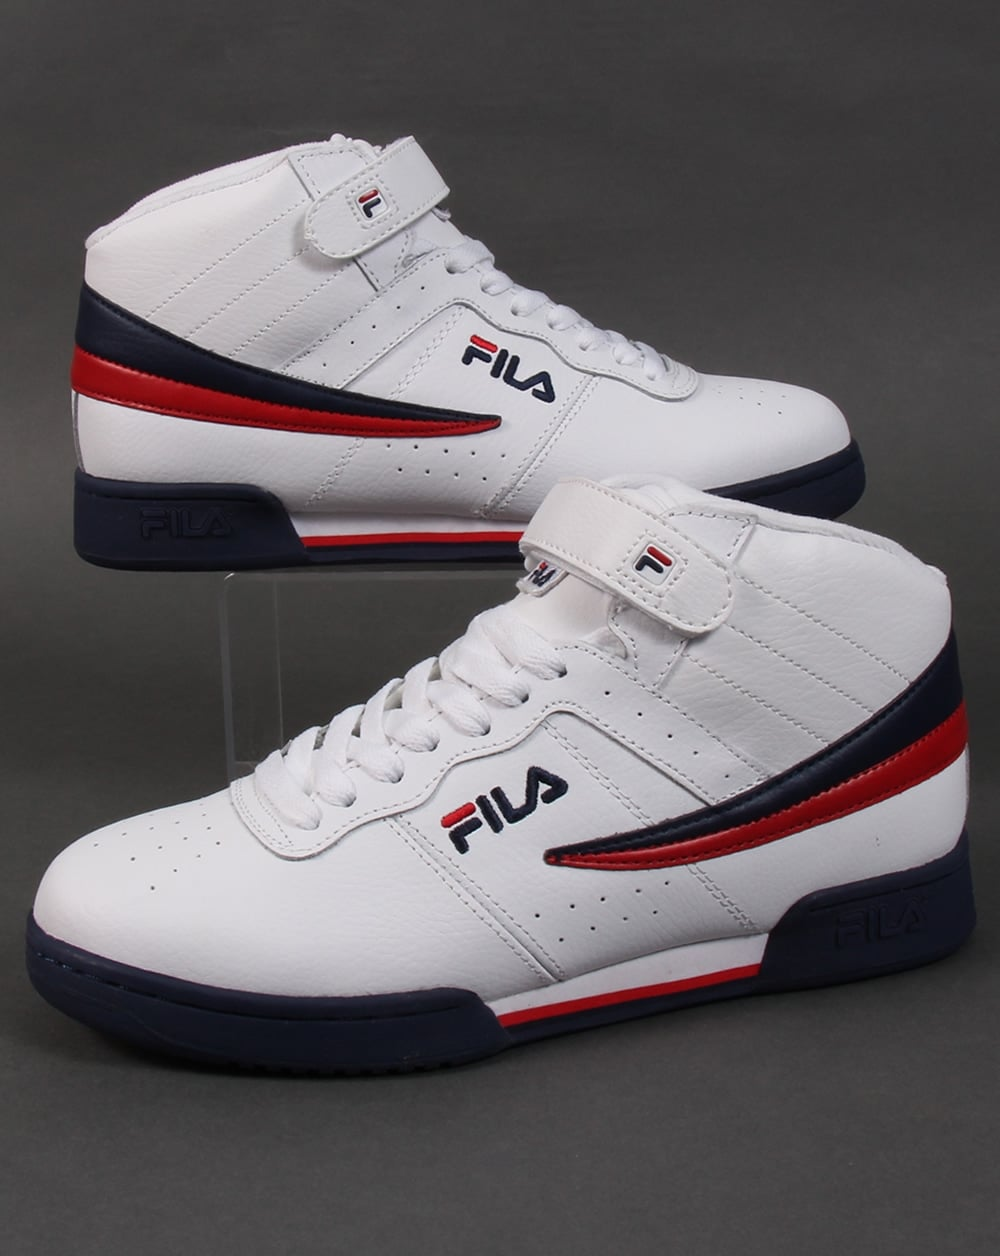 fila black high ankle basketball shoes Sale,up to 31